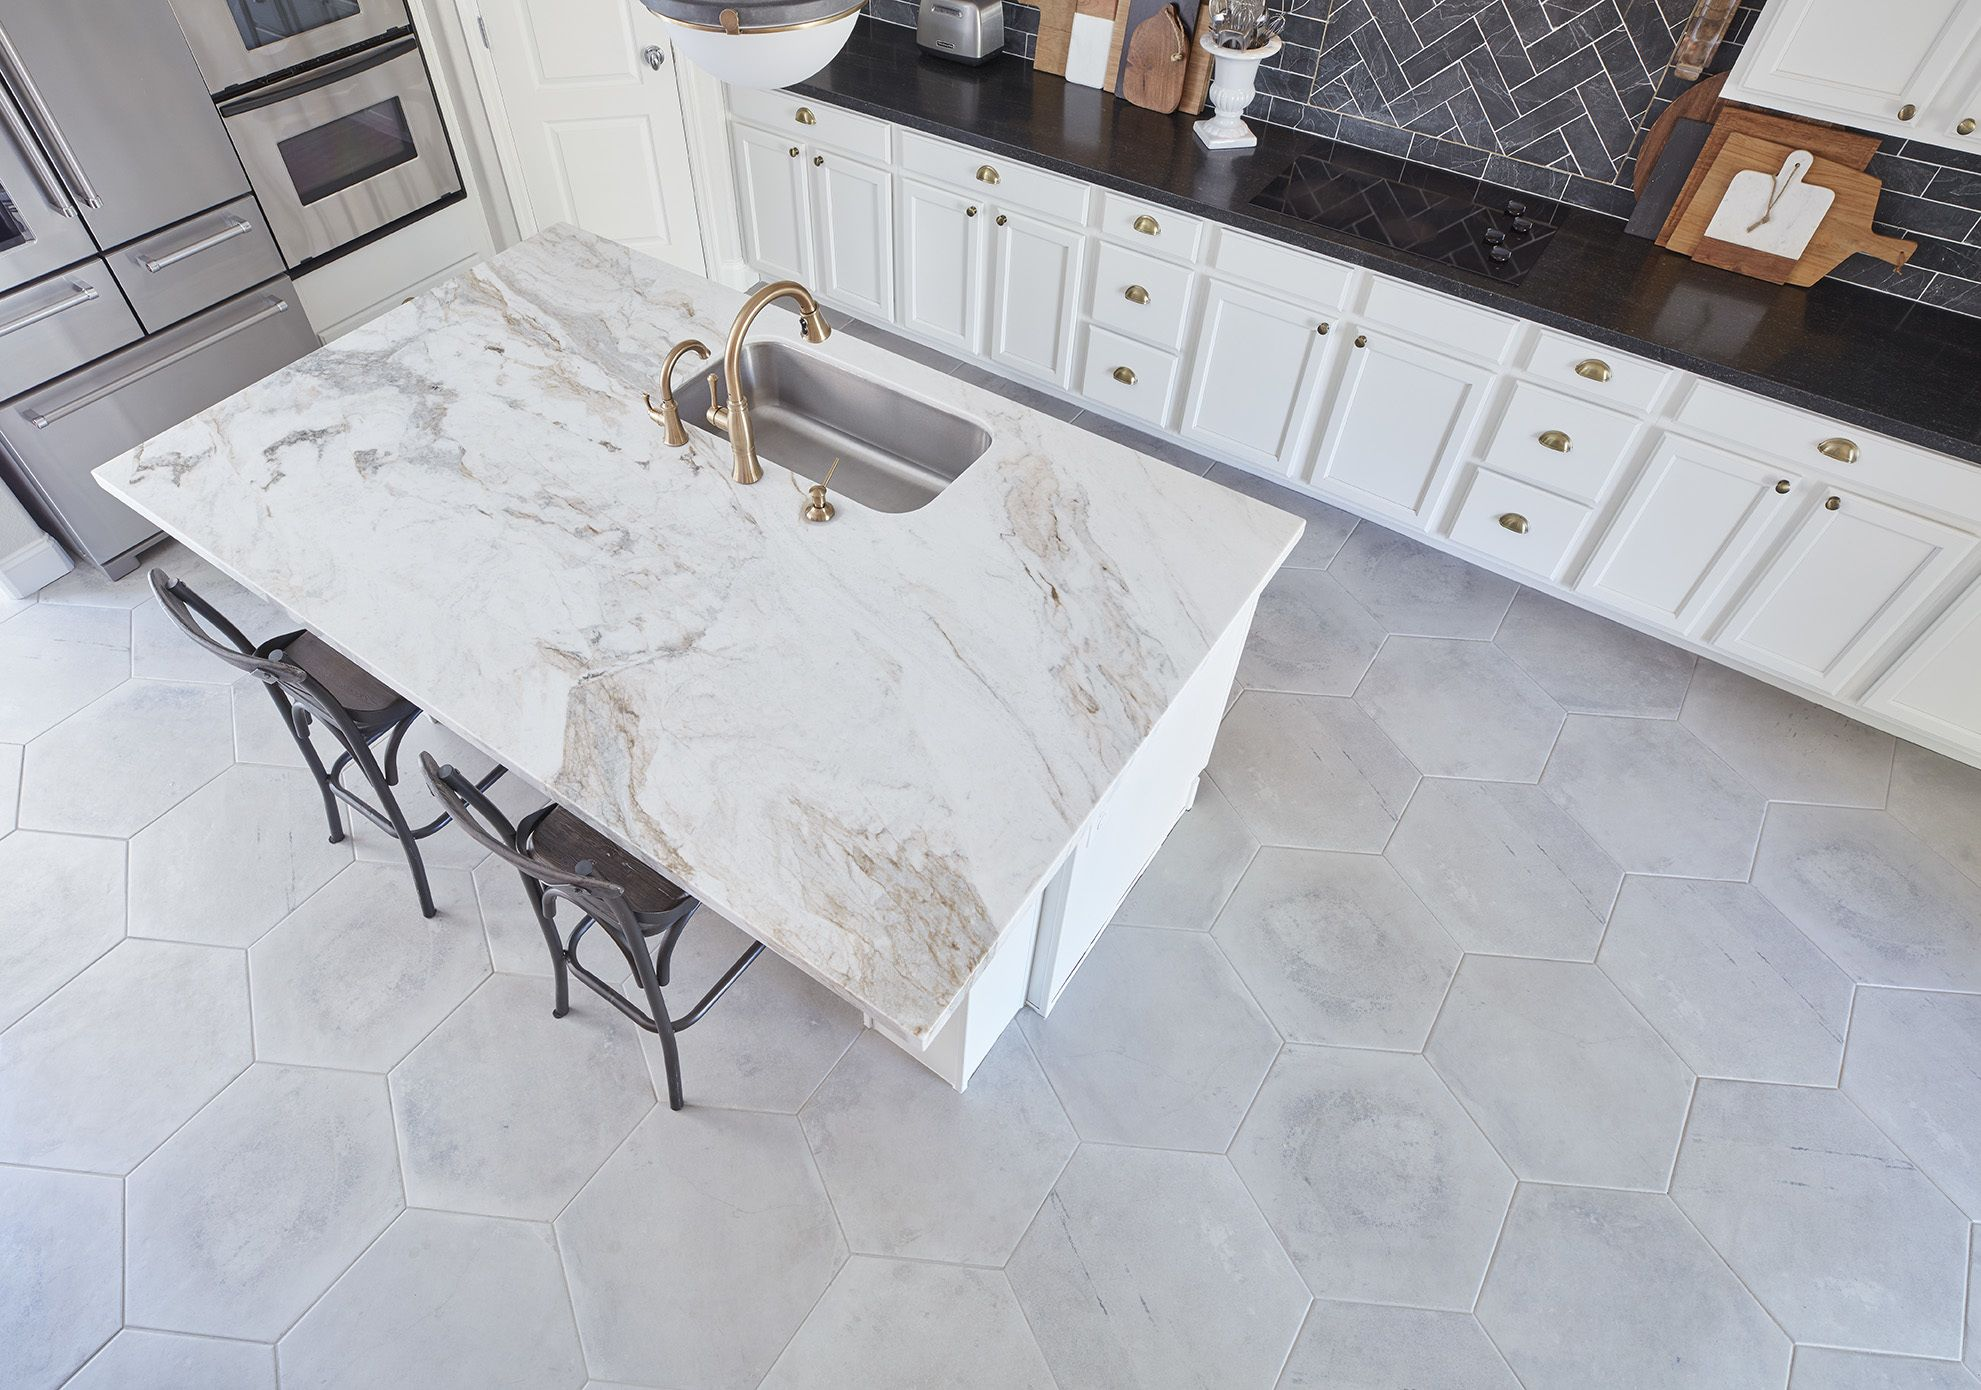 Tile Looks Like Concrete Don T Like The Shape But Like The Material And Color Trendy Kitchen Tile Kitchen Decor Apartment Cheap Kitchen Decor